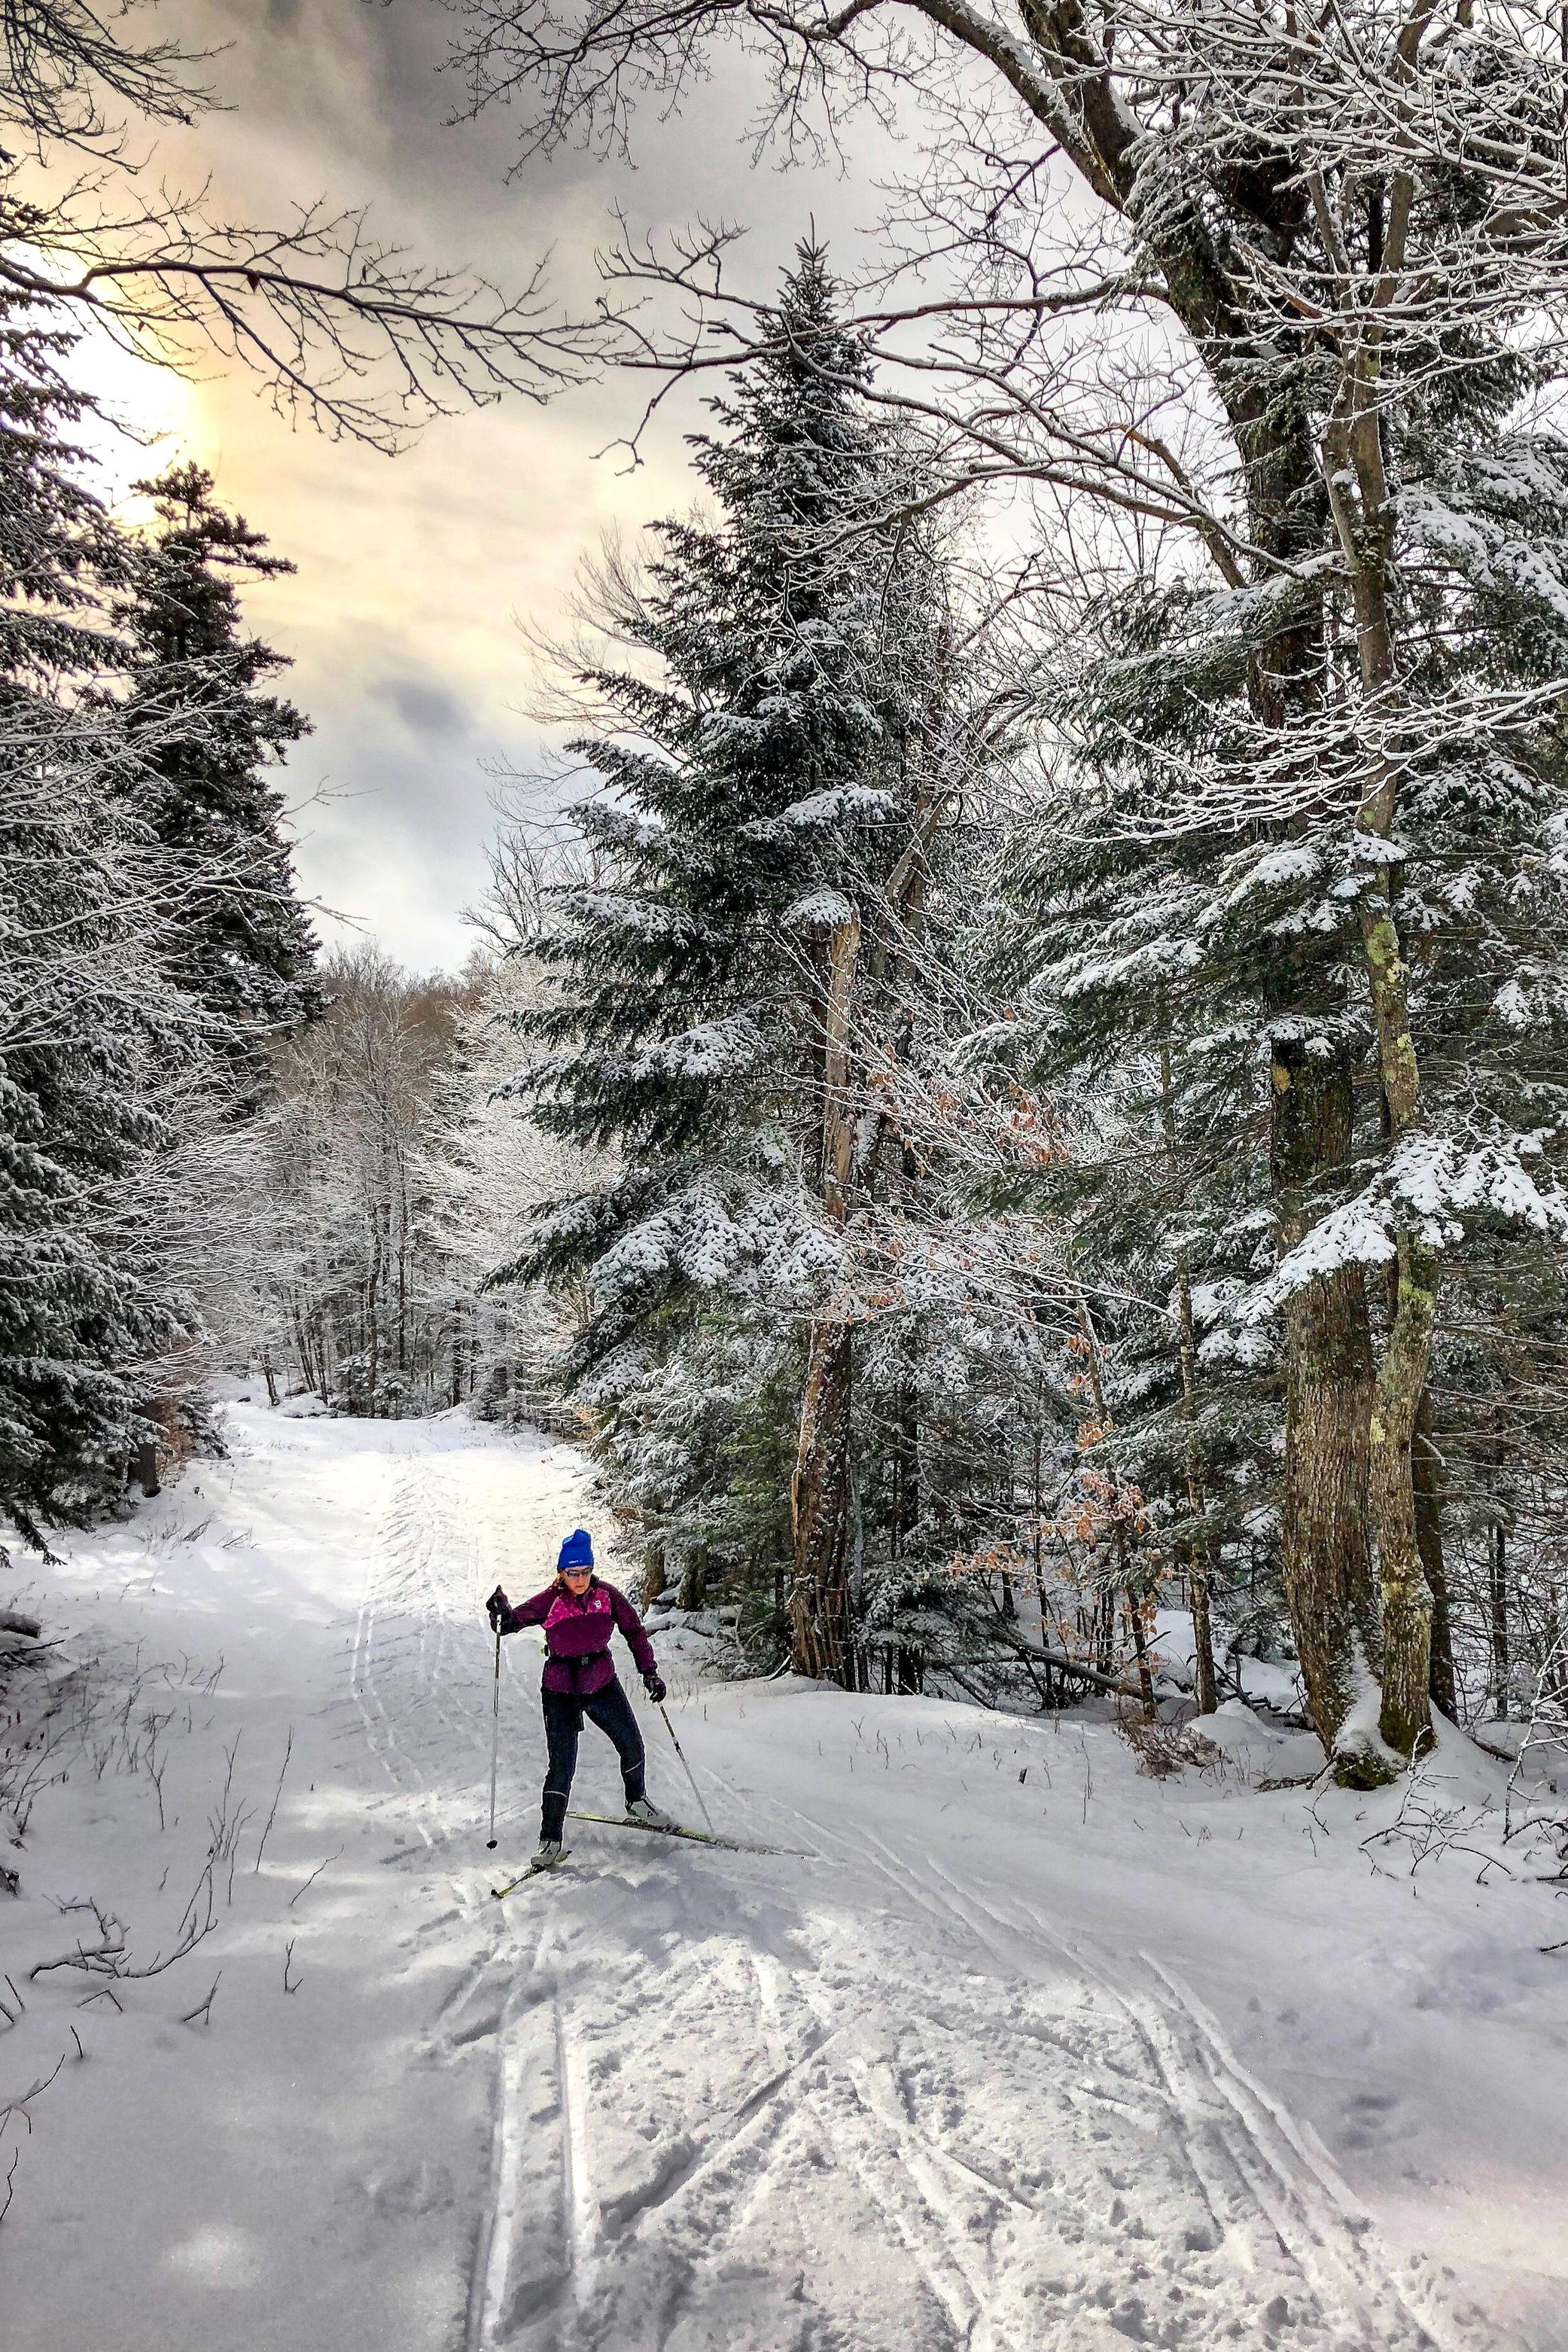 cross country skiing - Explore some of the most gorgeous scenery on cross-country skis in Chaffee County. Just 25 minutes west from Loyal Duke Lodge, cross-country ski and snowshoe over Old Monarch Pass, Co. After a gradual slope, stand on top of the Continental Divide and look into the Gunnison Valley. Stunning!